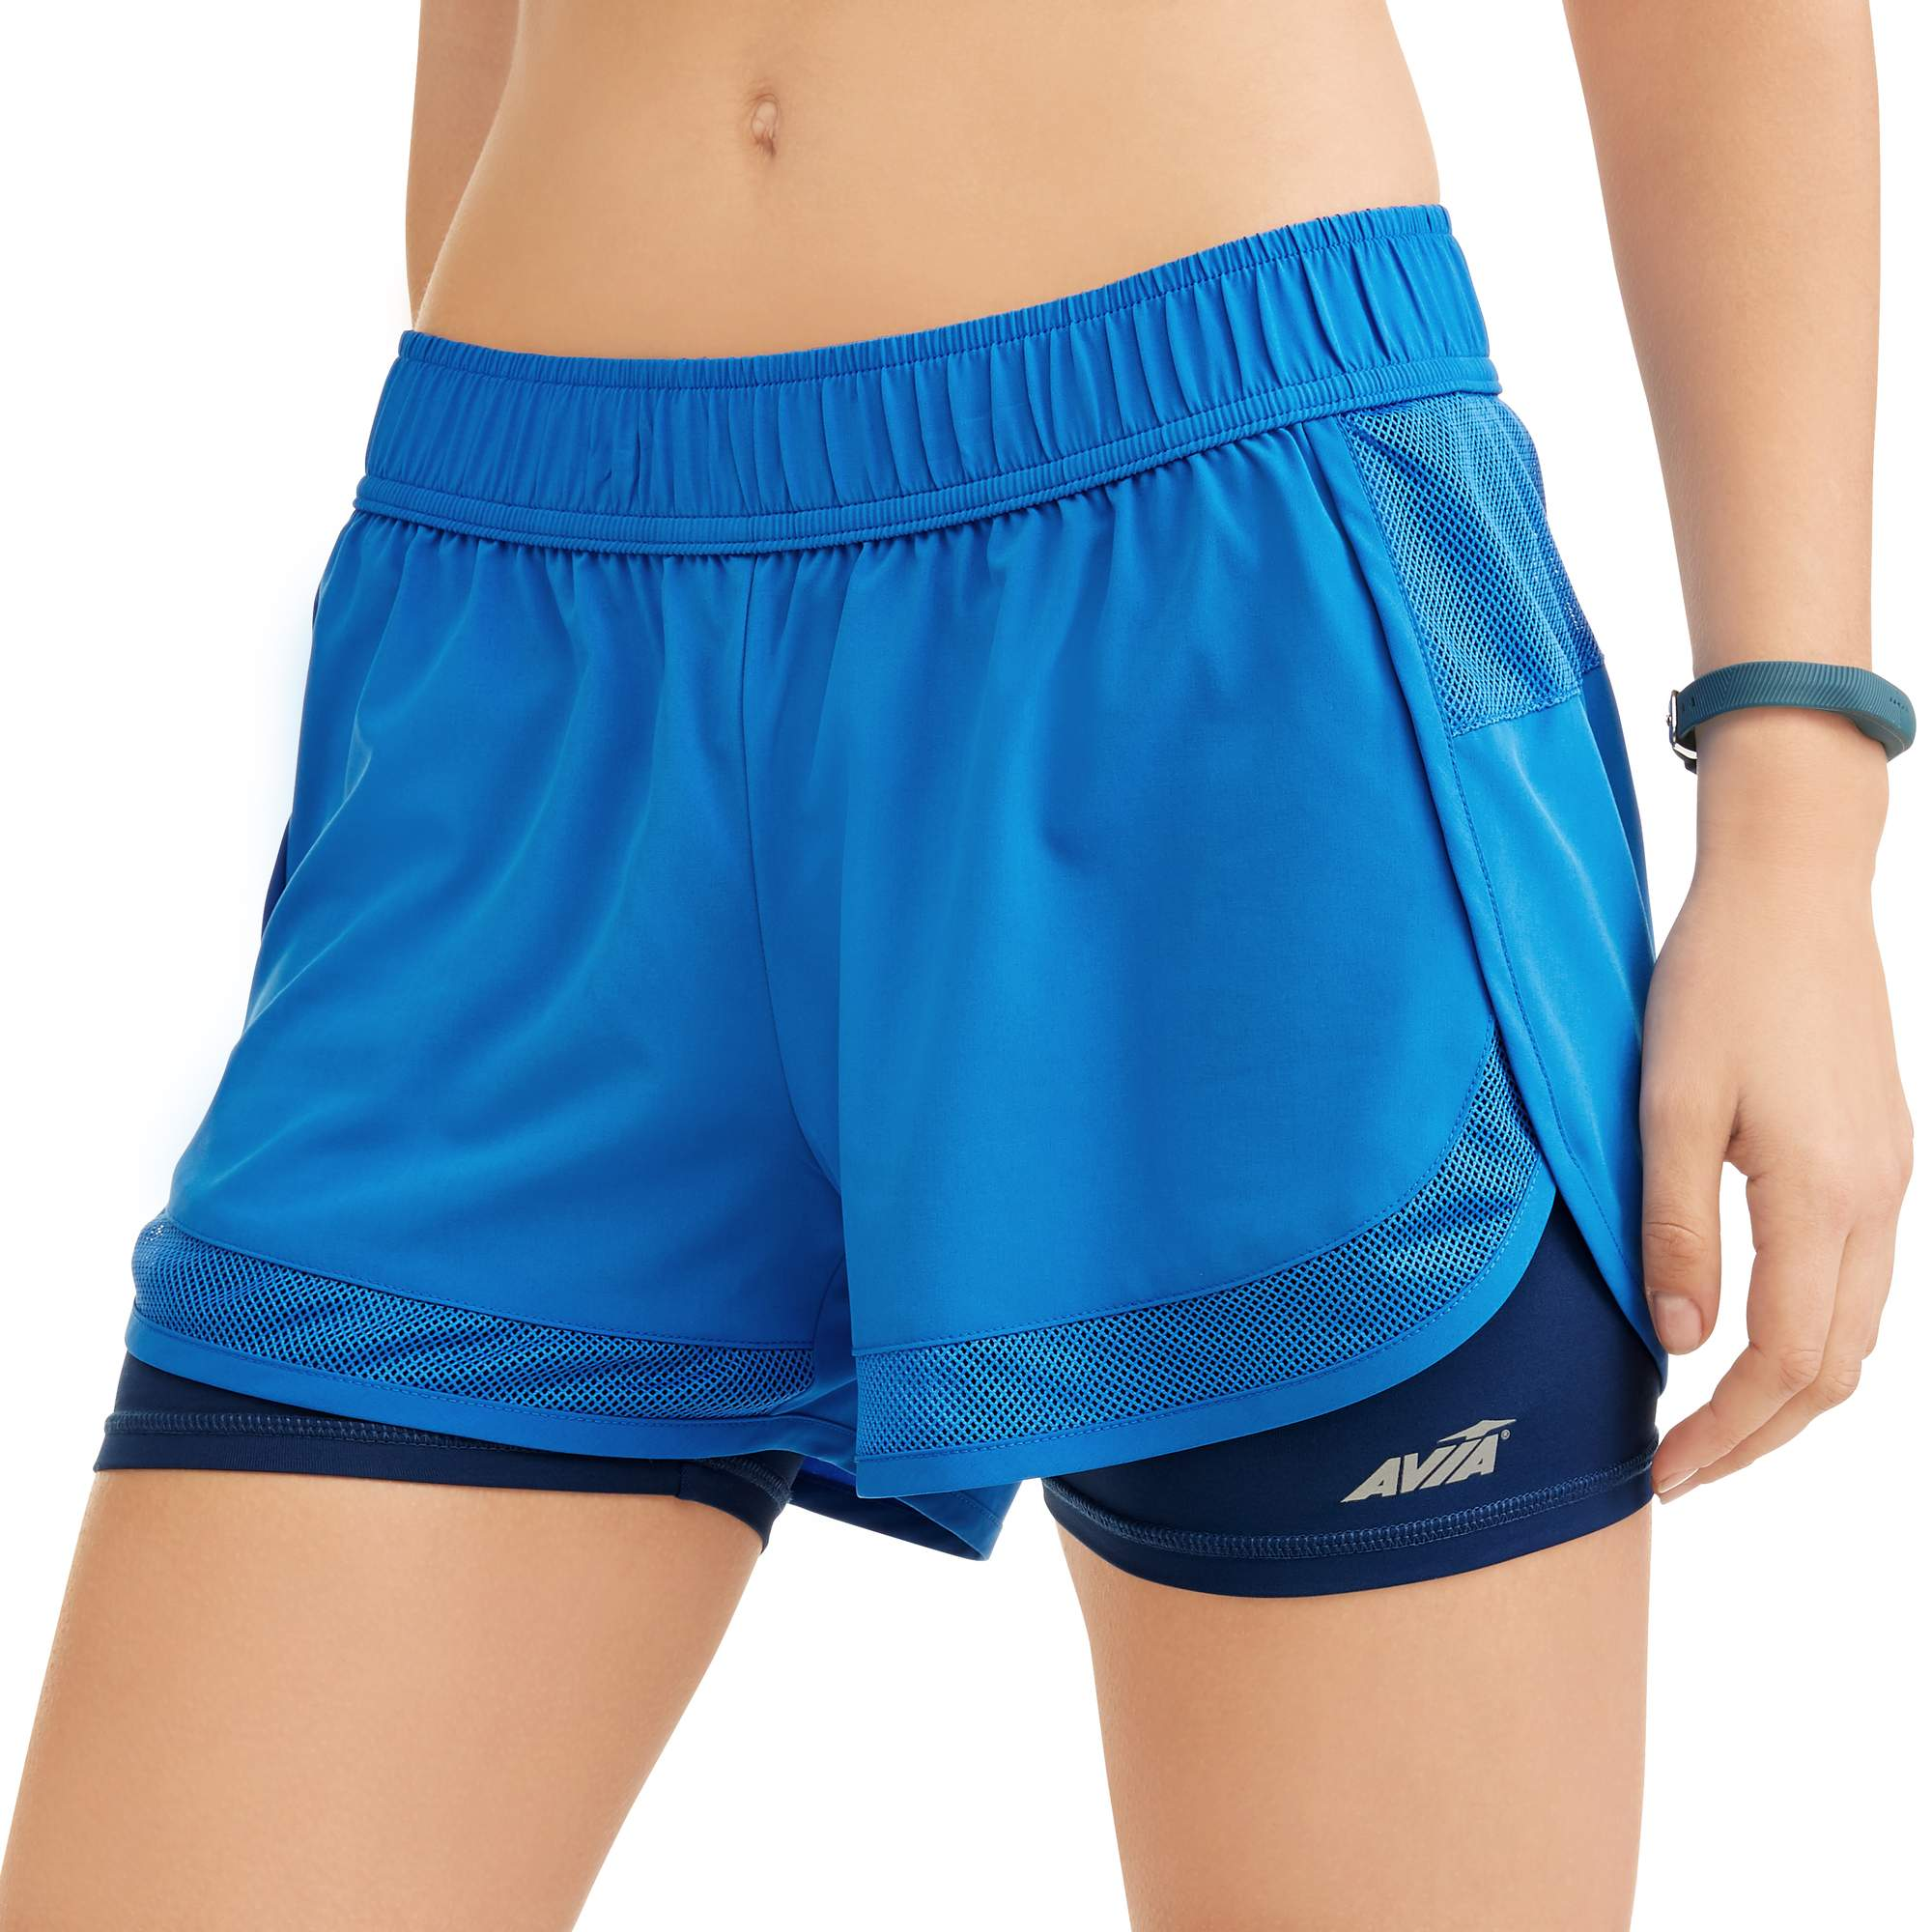 AVIA Women's Core Active Perforated 2fer Woven Running Short